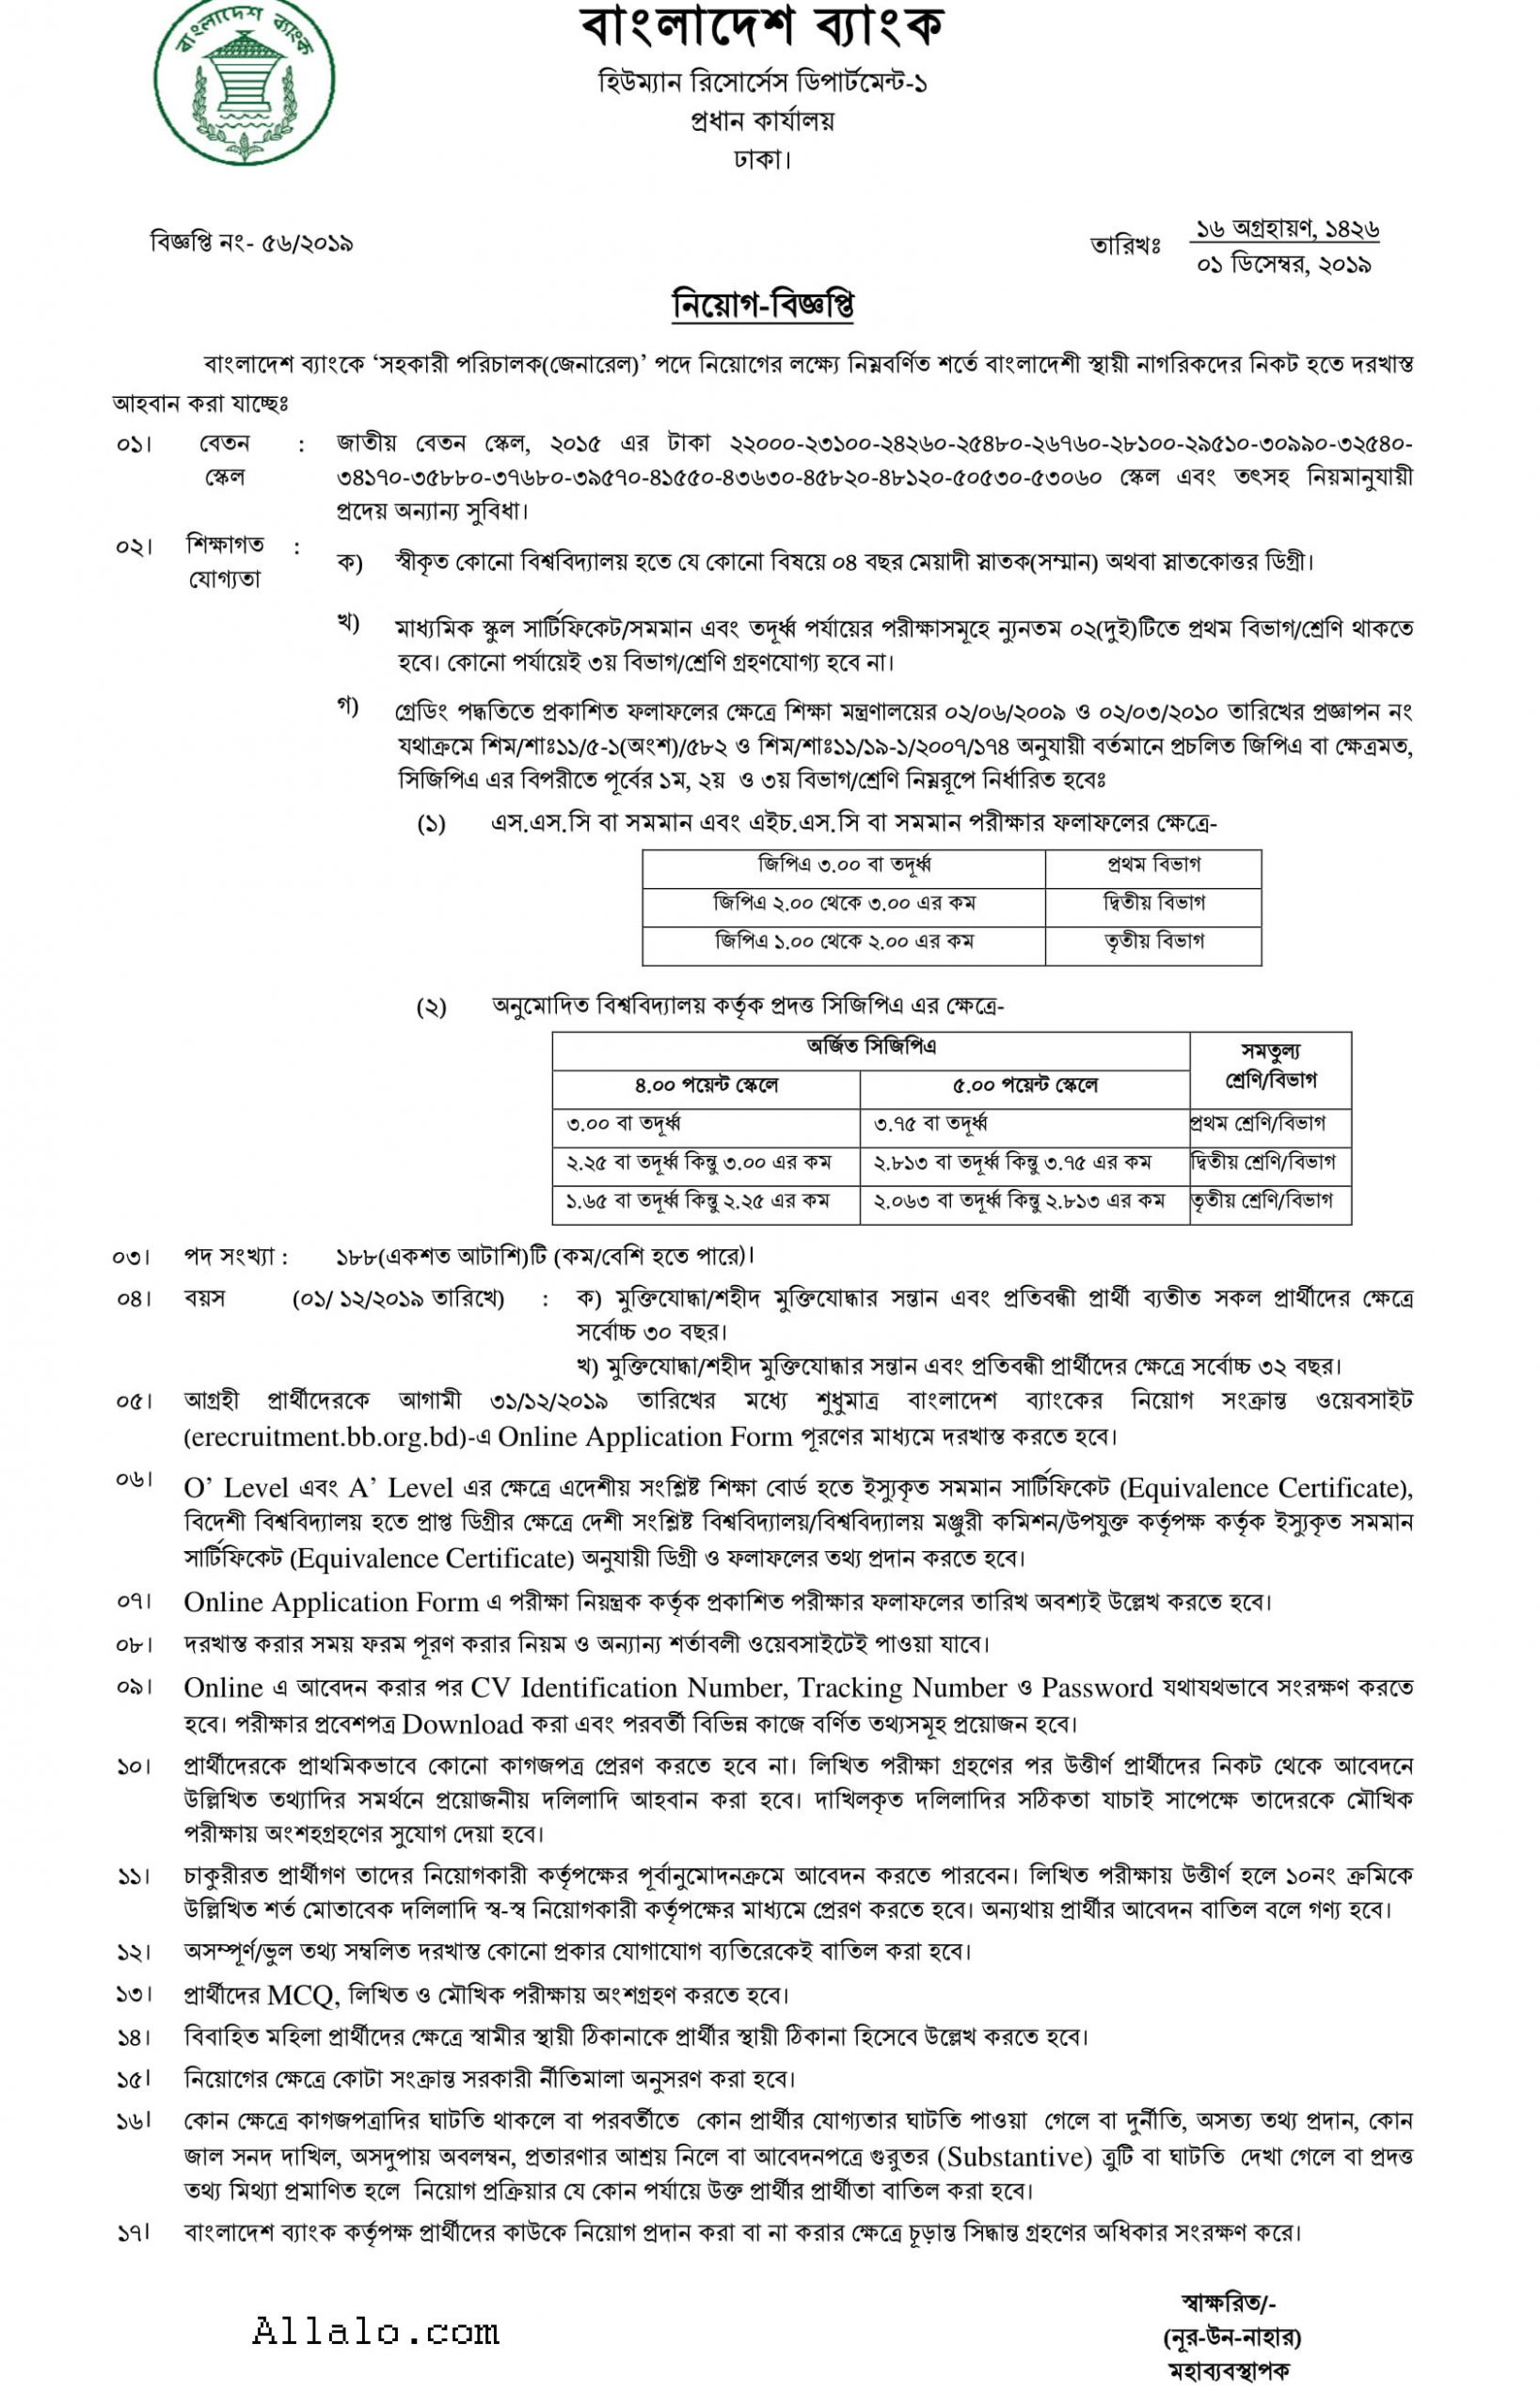 Bangladesh bank www.erecruitment.bb.org.bd Job Circular